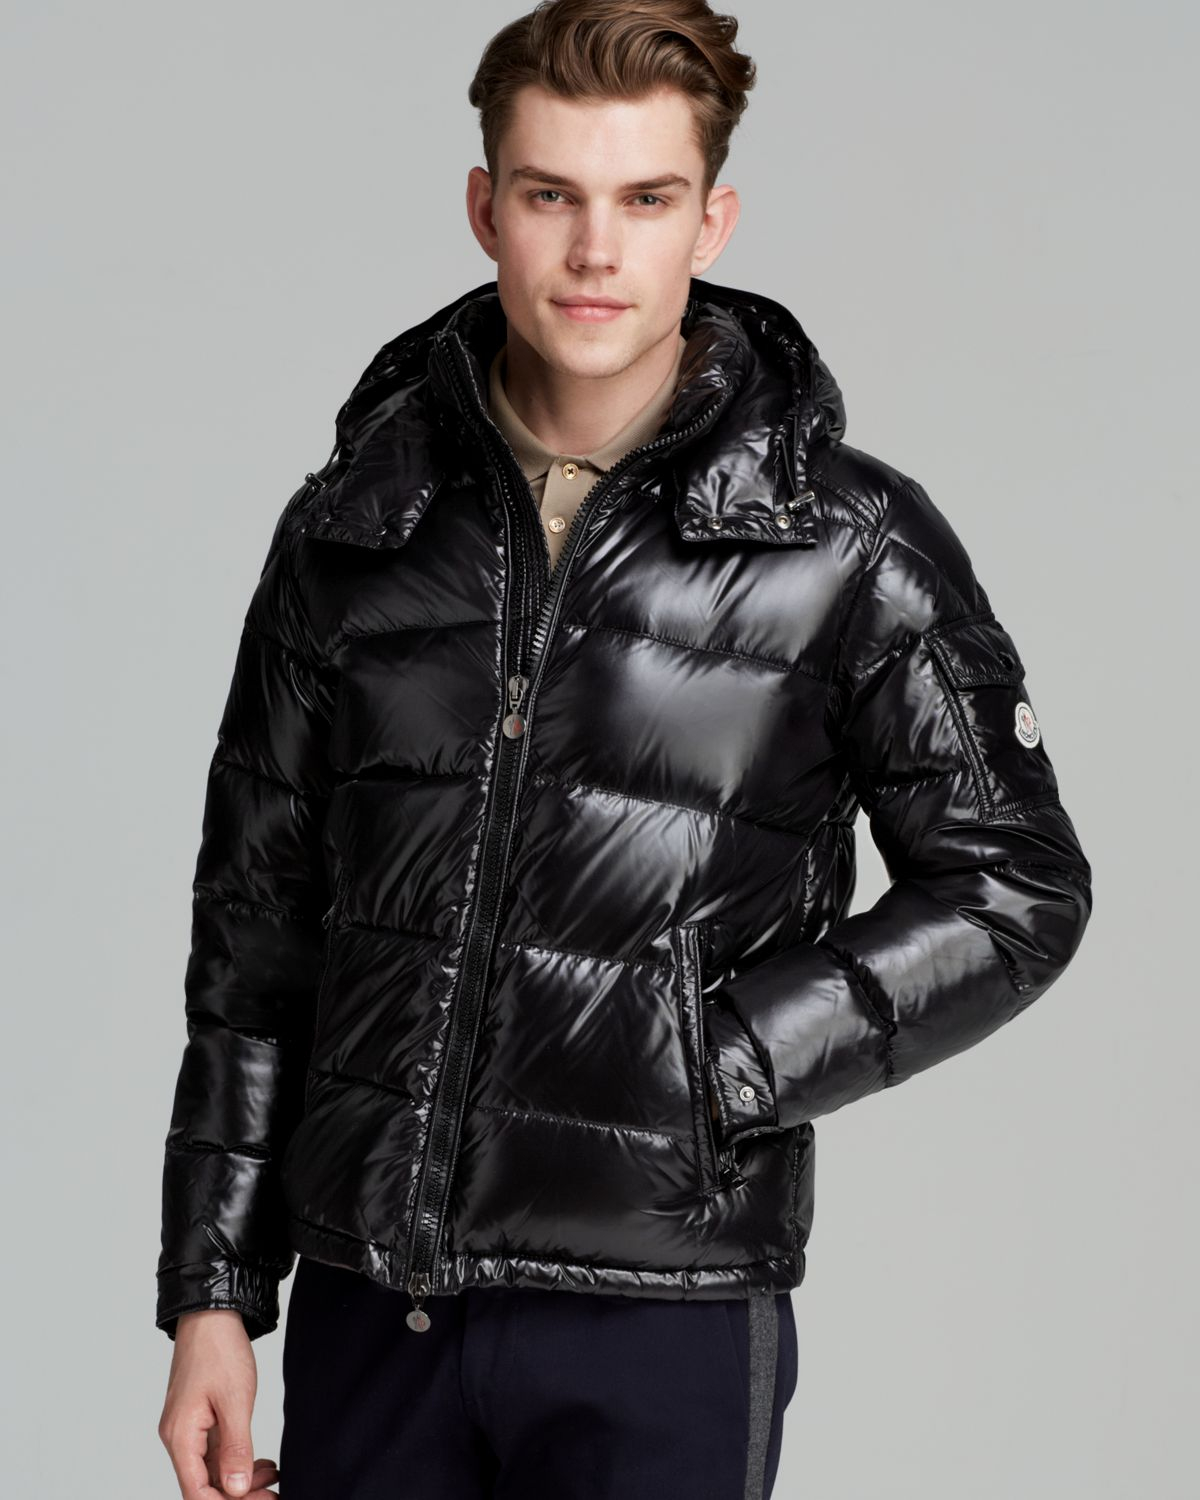 moncler maya glossy hooded down jacket in black for men lyst. Black Bedroom Furniture Sets. Home Design Ideas